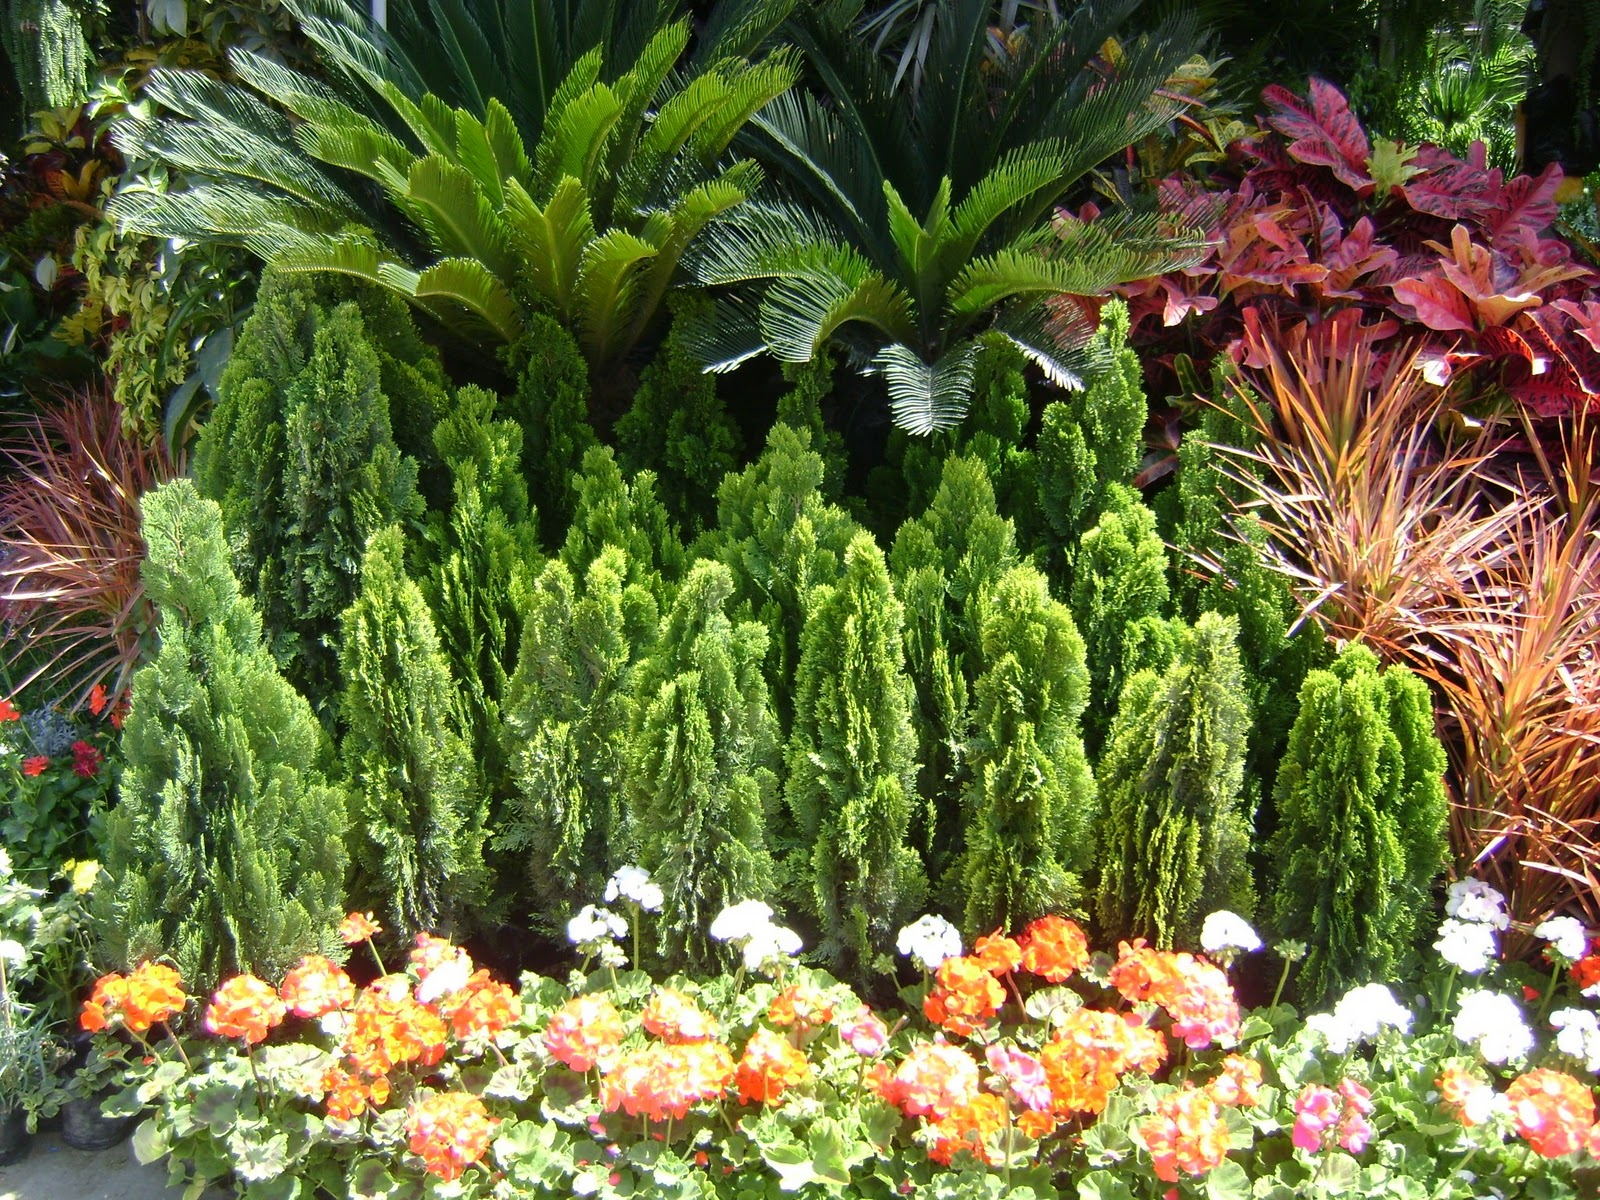 Jardines y macetas fotos de plantas de interior y exterior for Jardines decoracion fotos